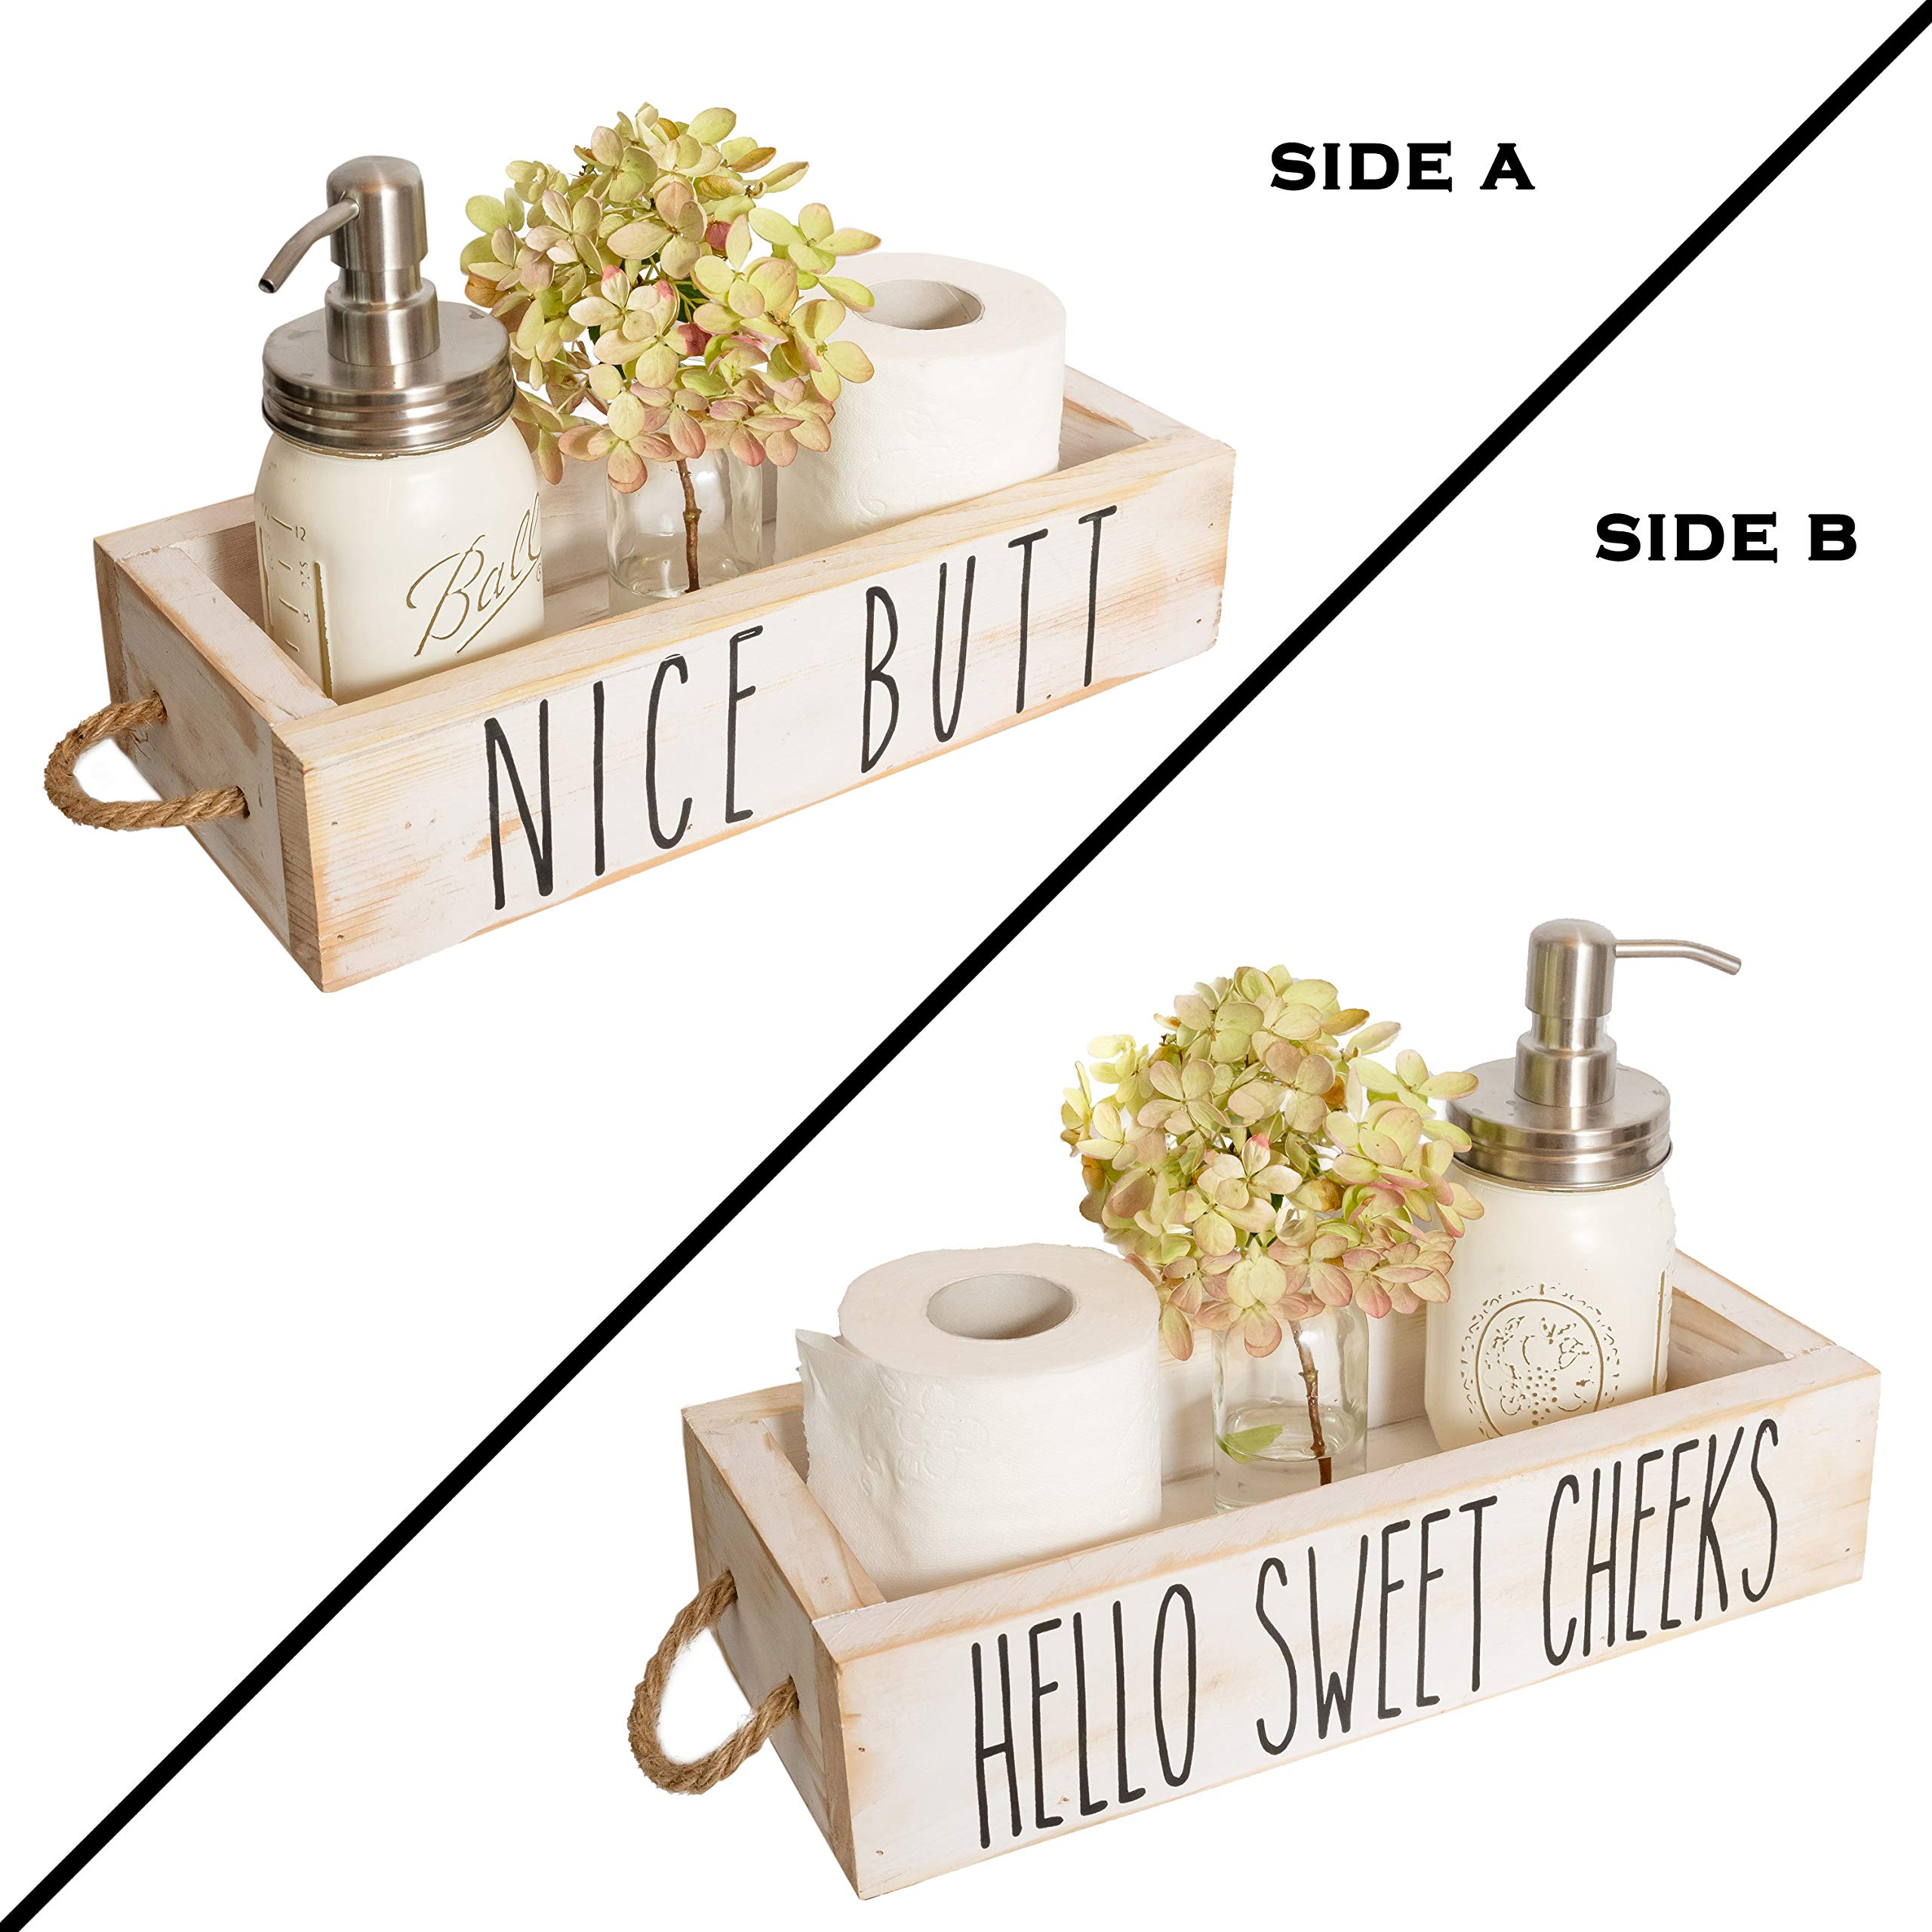 Rustic Home Decor Box for Bathroom Kitchen Farmhouse Bathroom Decor Wooden Toilet Paper Holder White Nice Butt Bathroom Decor Box 2 Sides with Funny Sayings